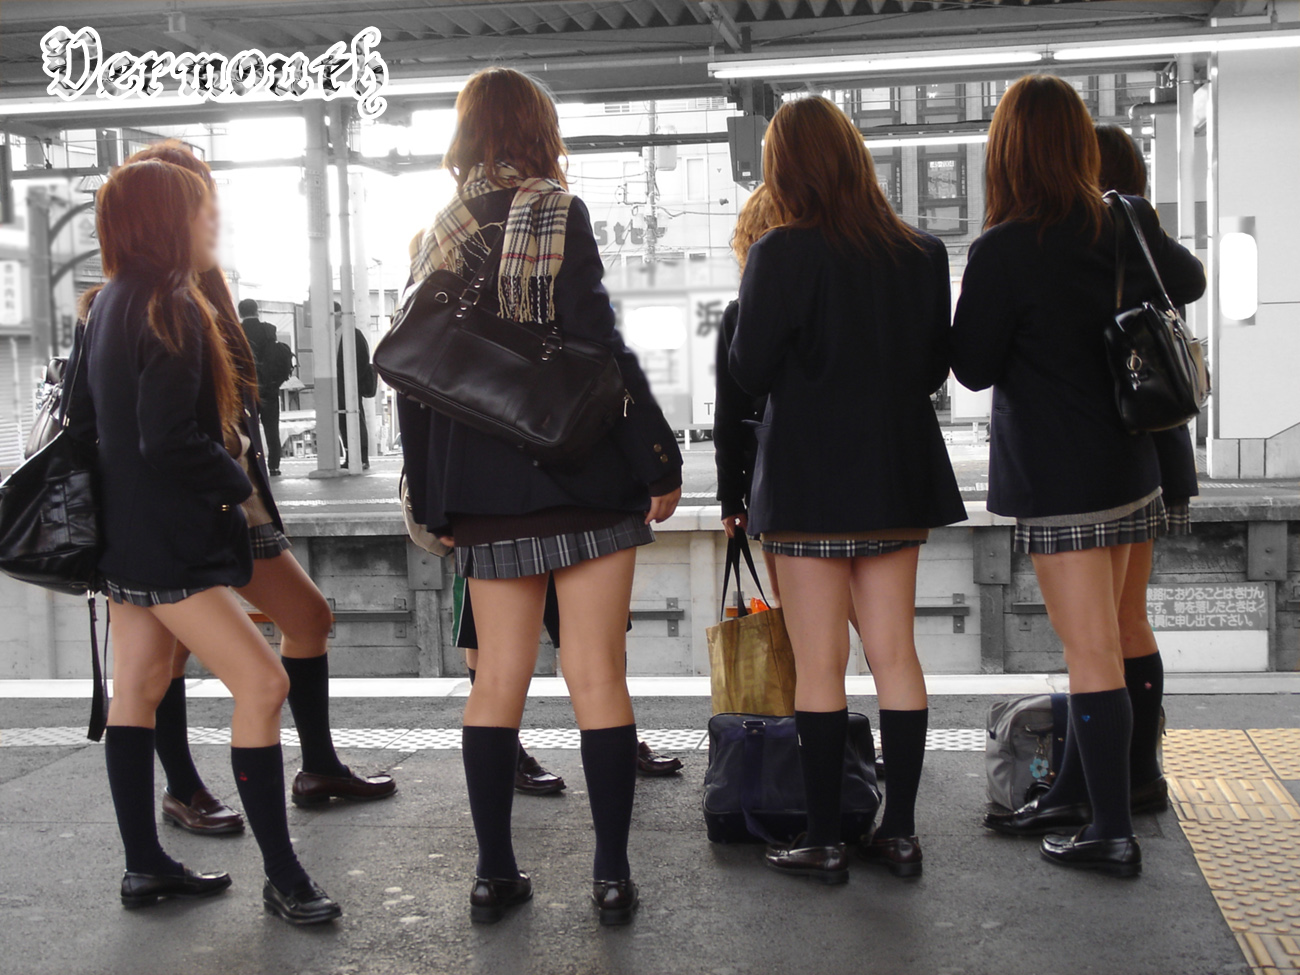 Breaking fashion news: Japanese high school girls' sock-lines are sinking!